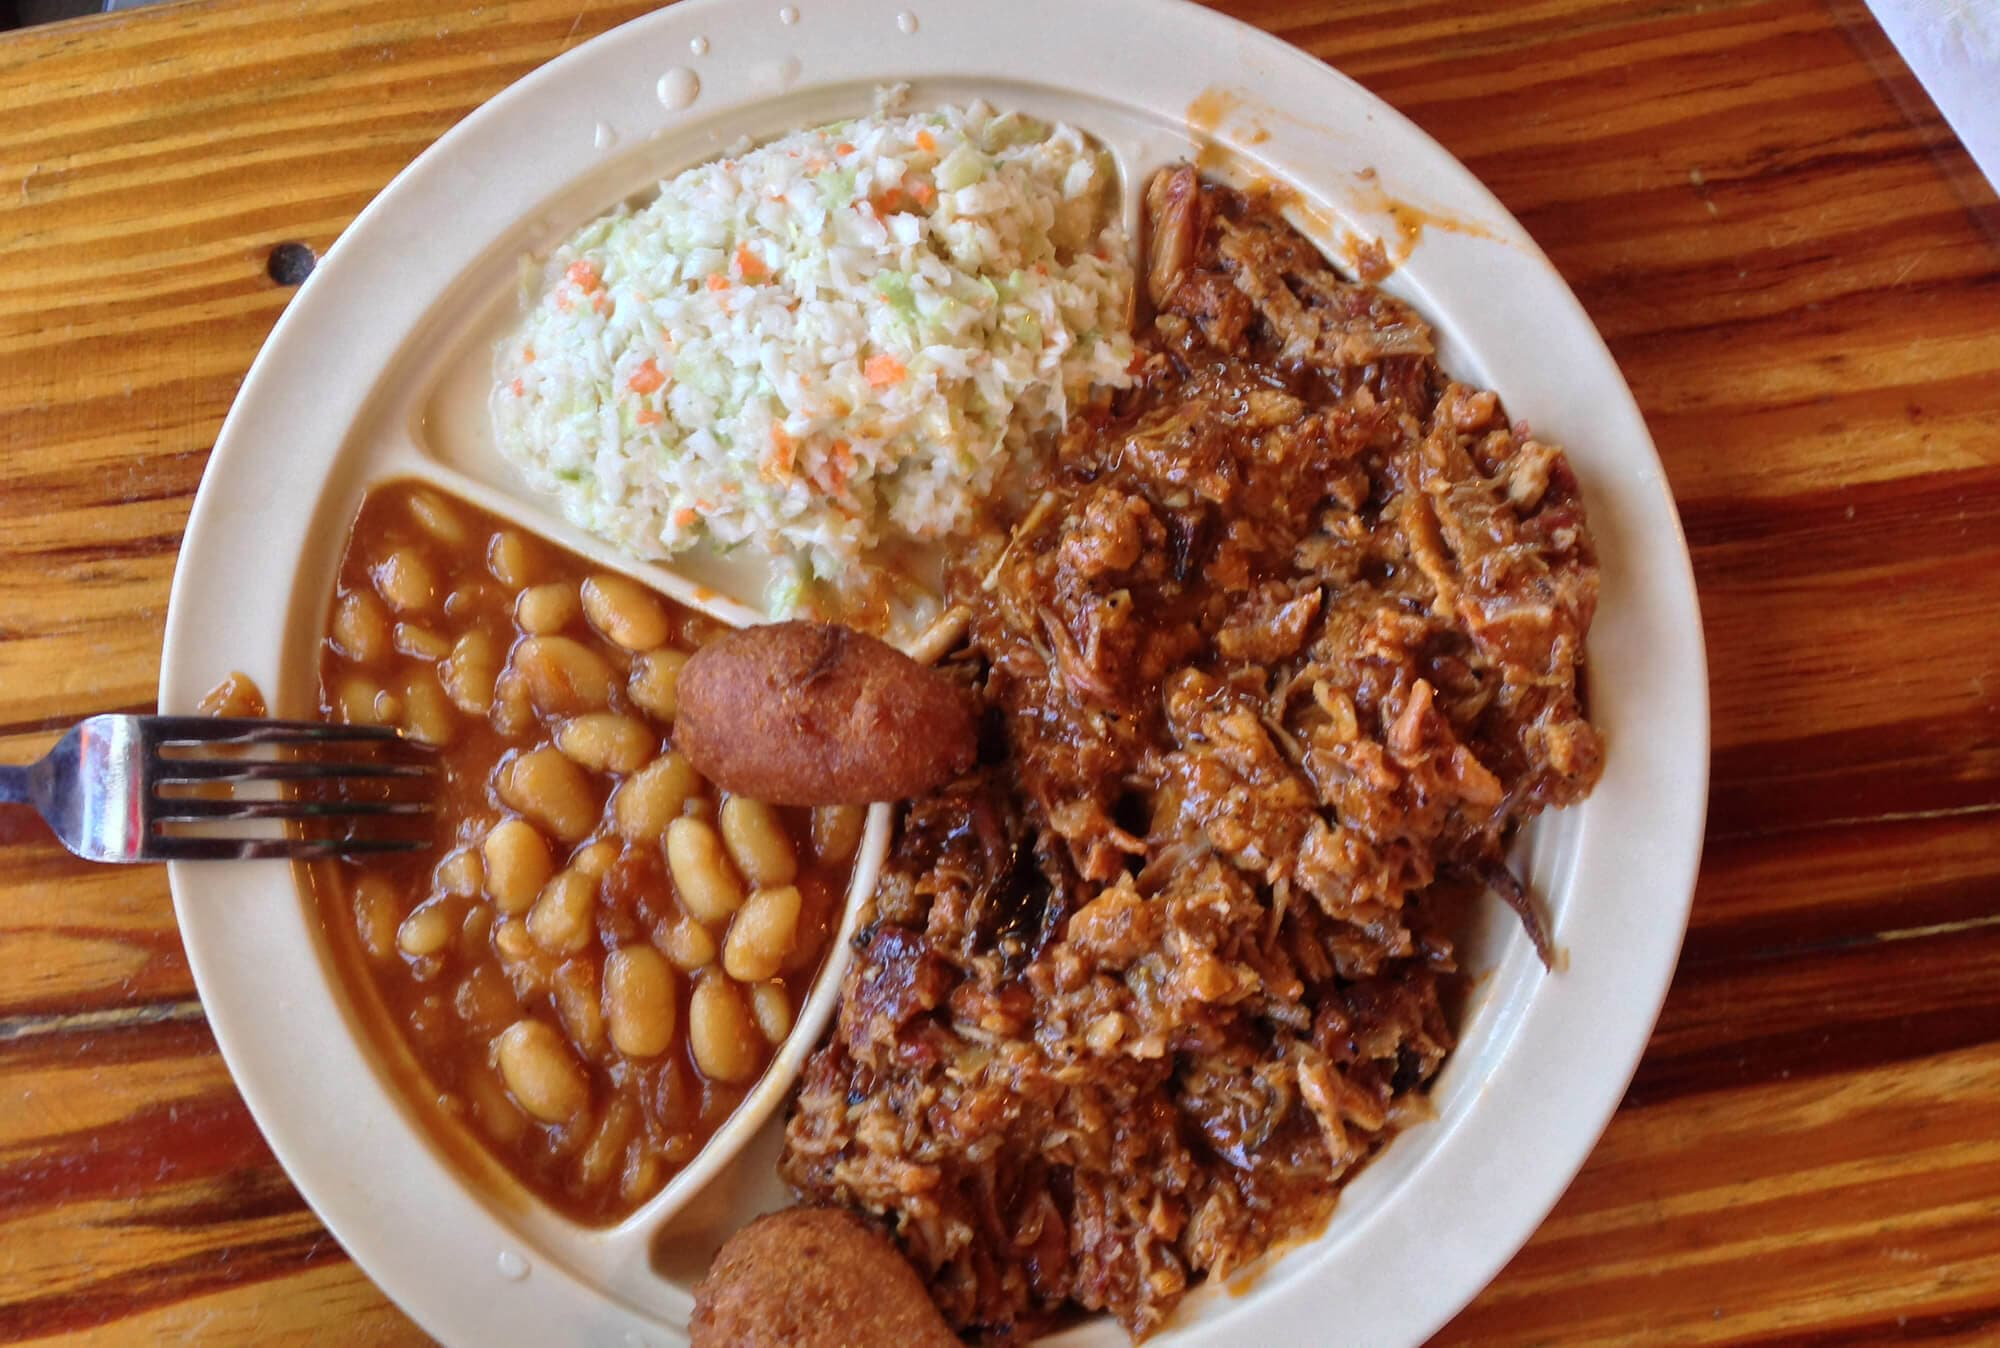 plate of pulled pork, baked beans, cole slaw and hush puppies at Jimbo's Pit Bar-B-Q in Lakeland, FL